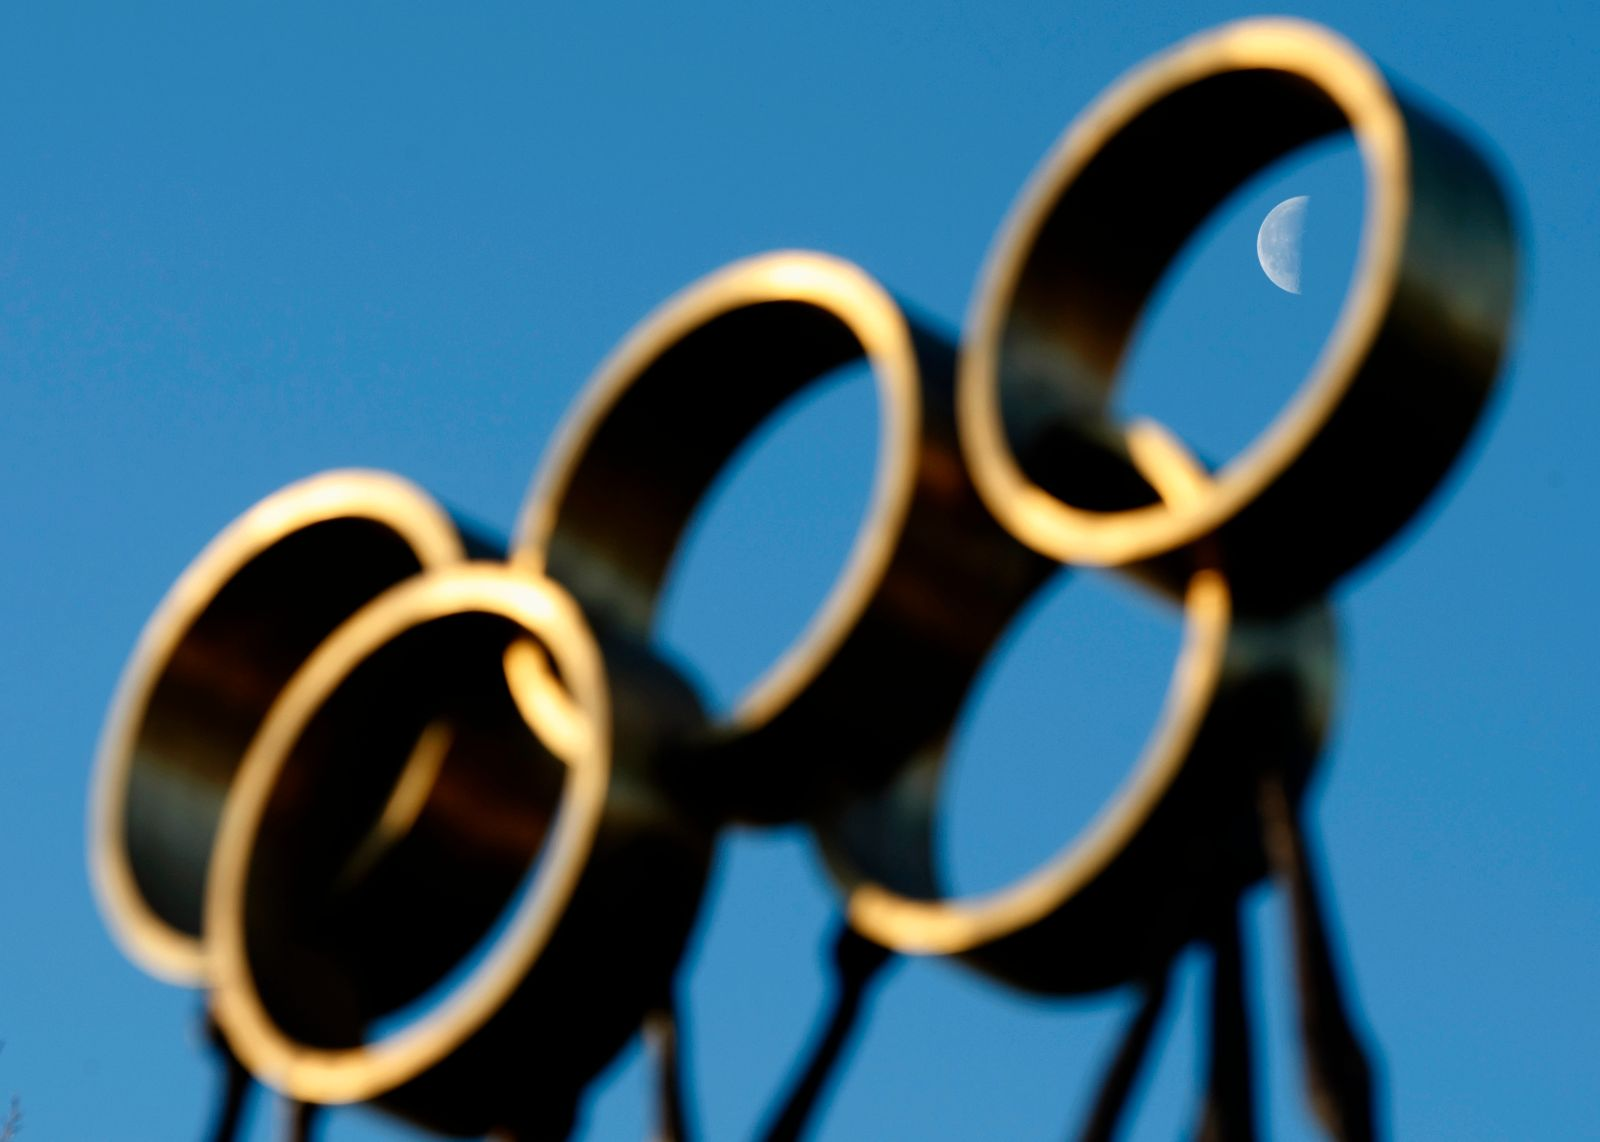 The moon is pictured through a sculpture in front of the IOC headquarters in Lausanne